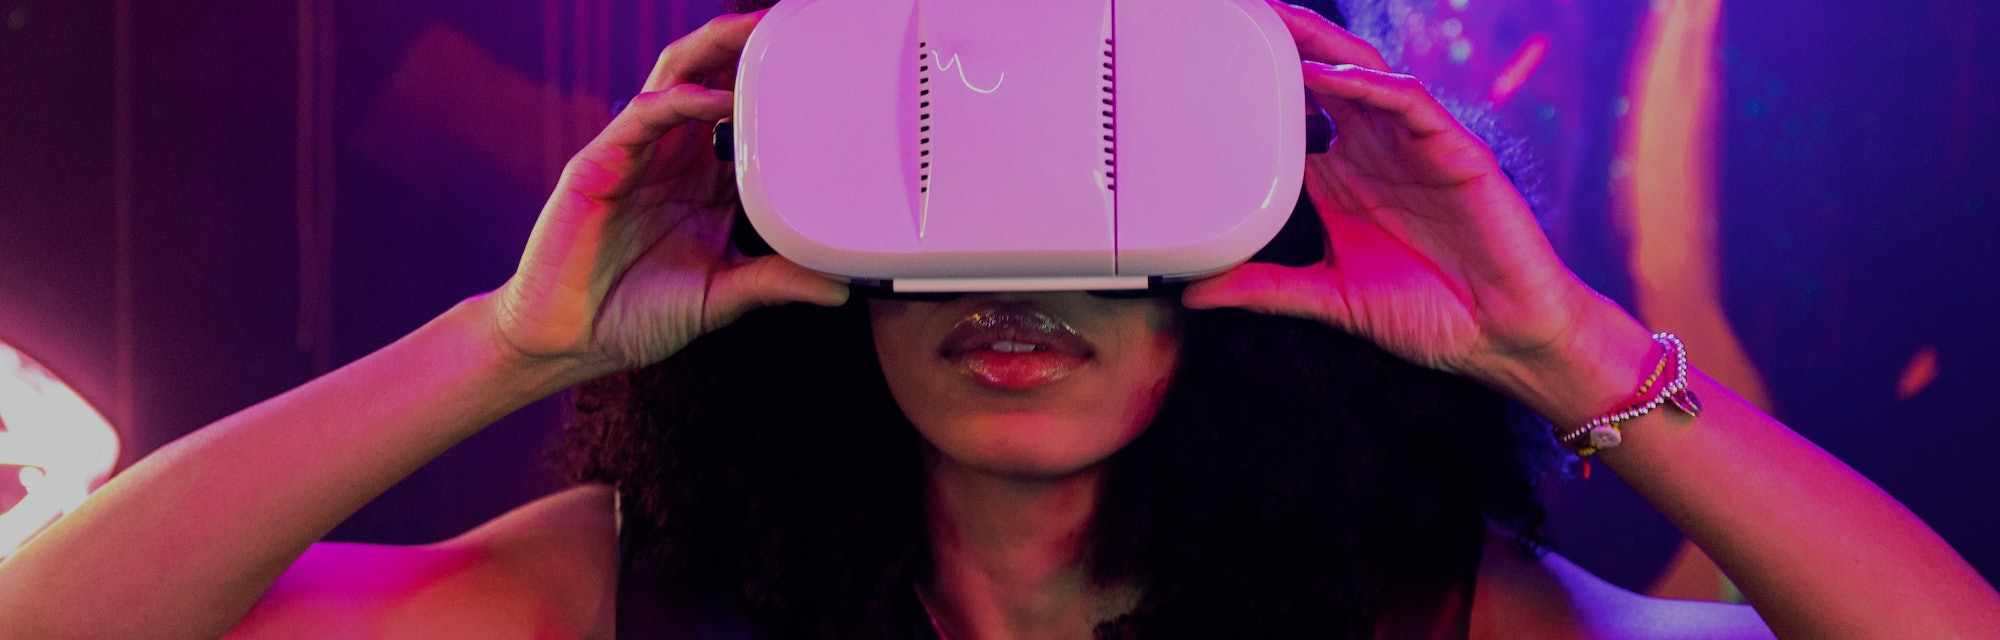 Young adult Afro American woman using Virtual Reality headset with both hands holding it at night wi...